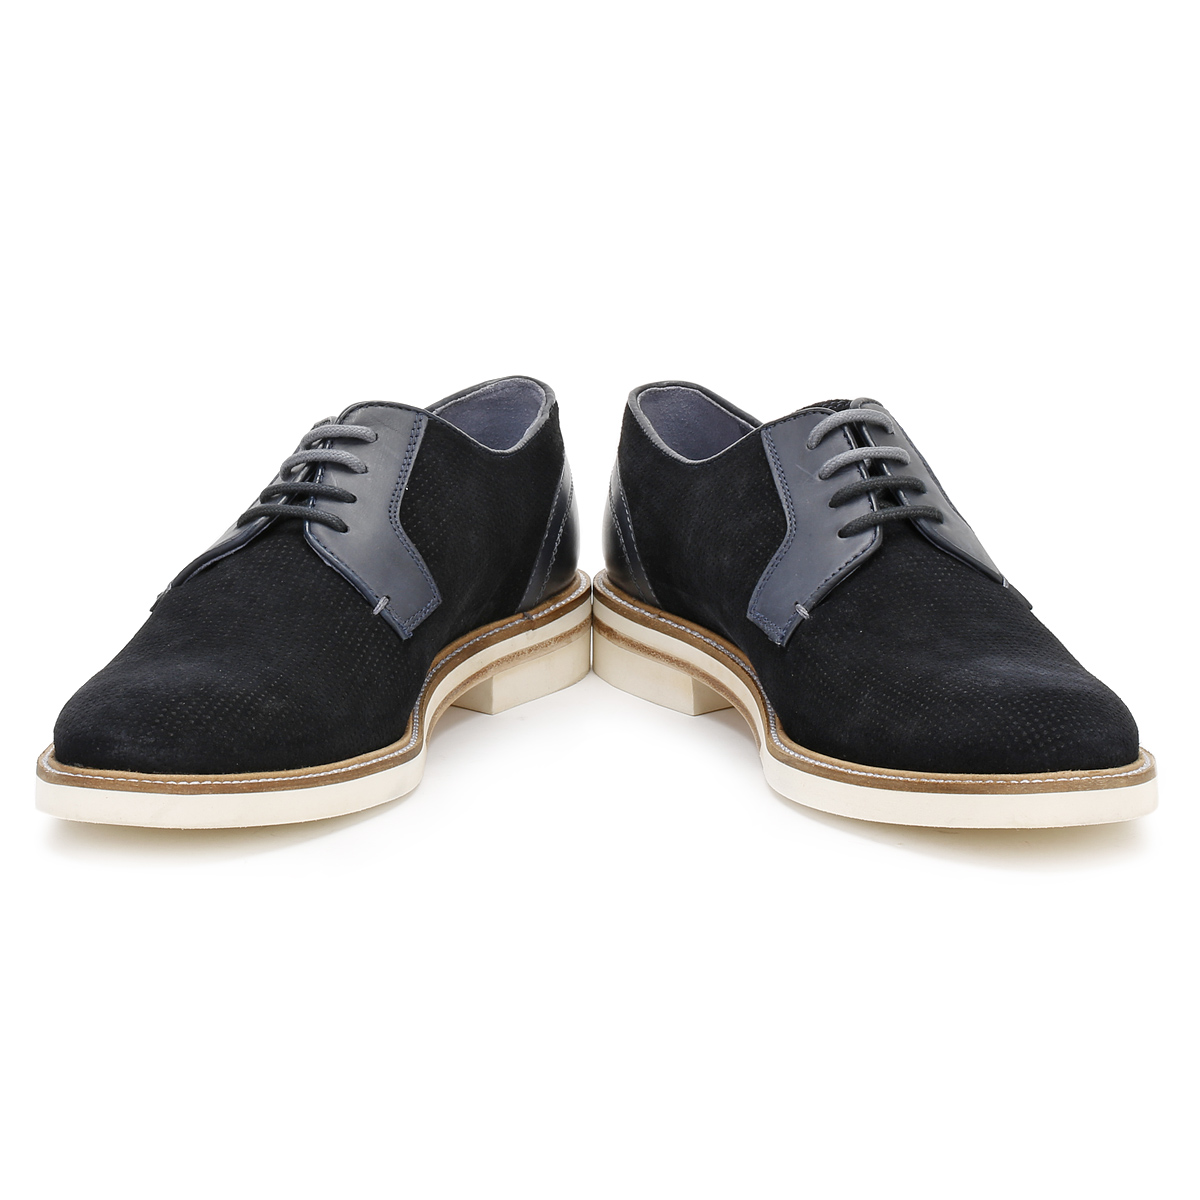 3bfd8bf5fbeeec Ted-Baker-Mens-Dark-Blue-Siablo-Derby-Shoes-